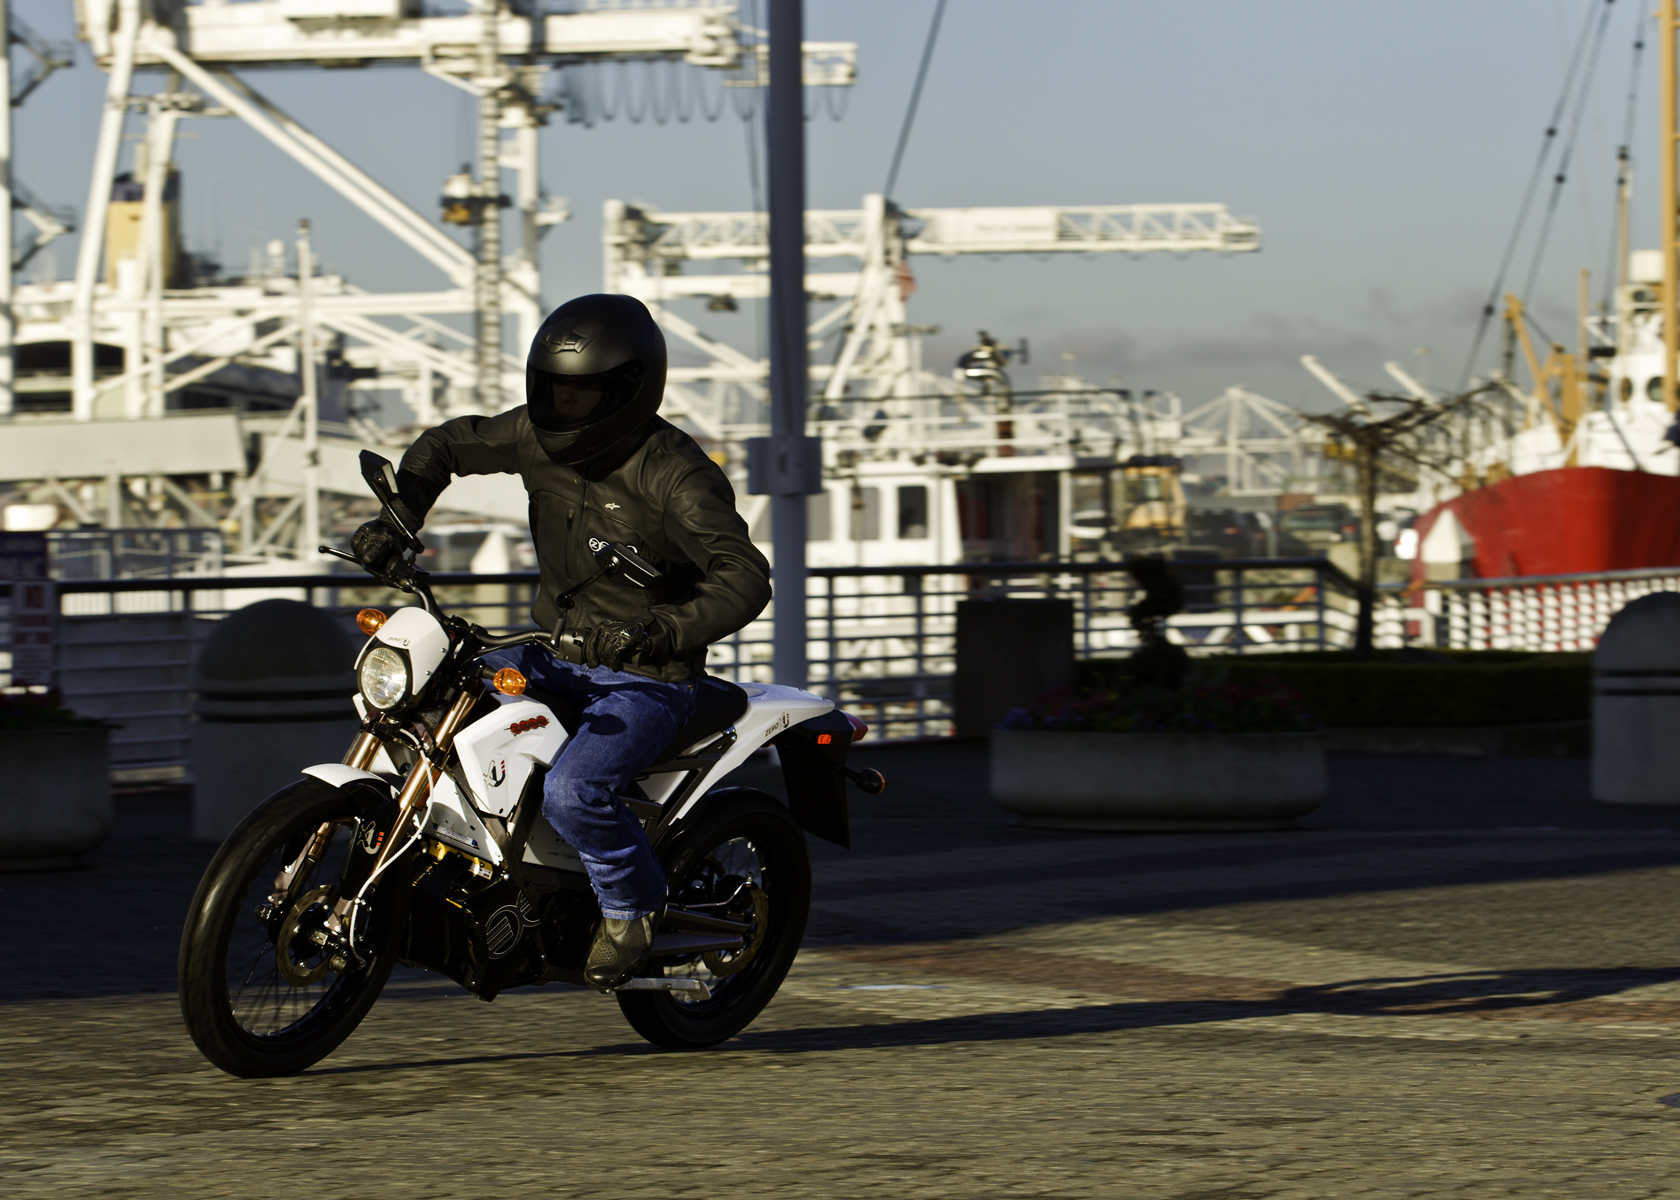 2011 Zero XU Electric Motorcycle: By the Wharf